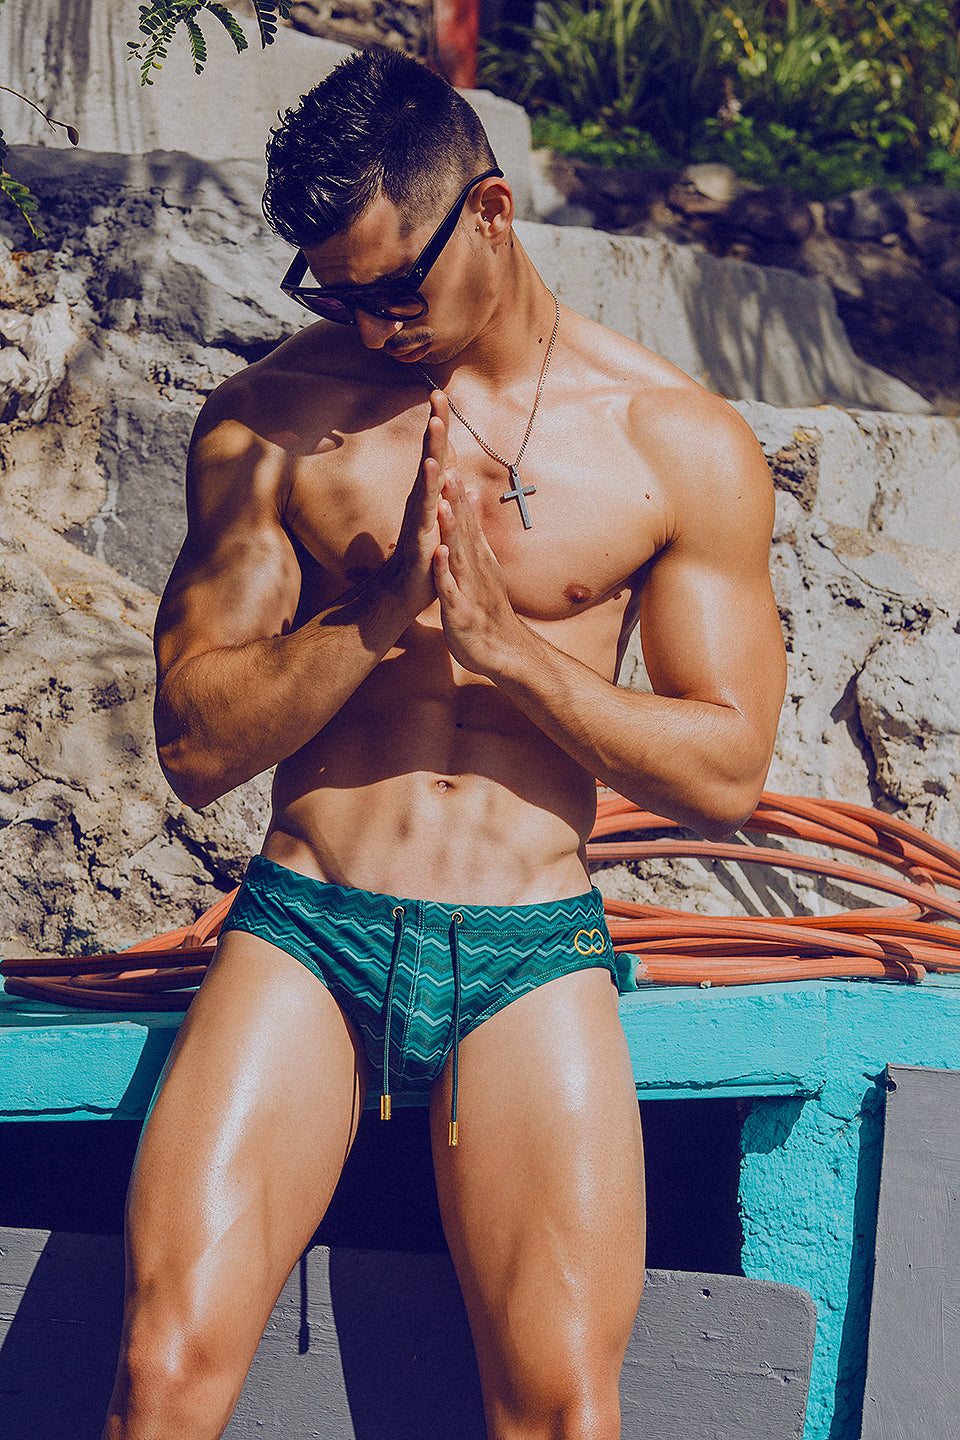 It's About The Man - Adrian C Martin - Model Mikel Roman Wears 2Eros Swimwear